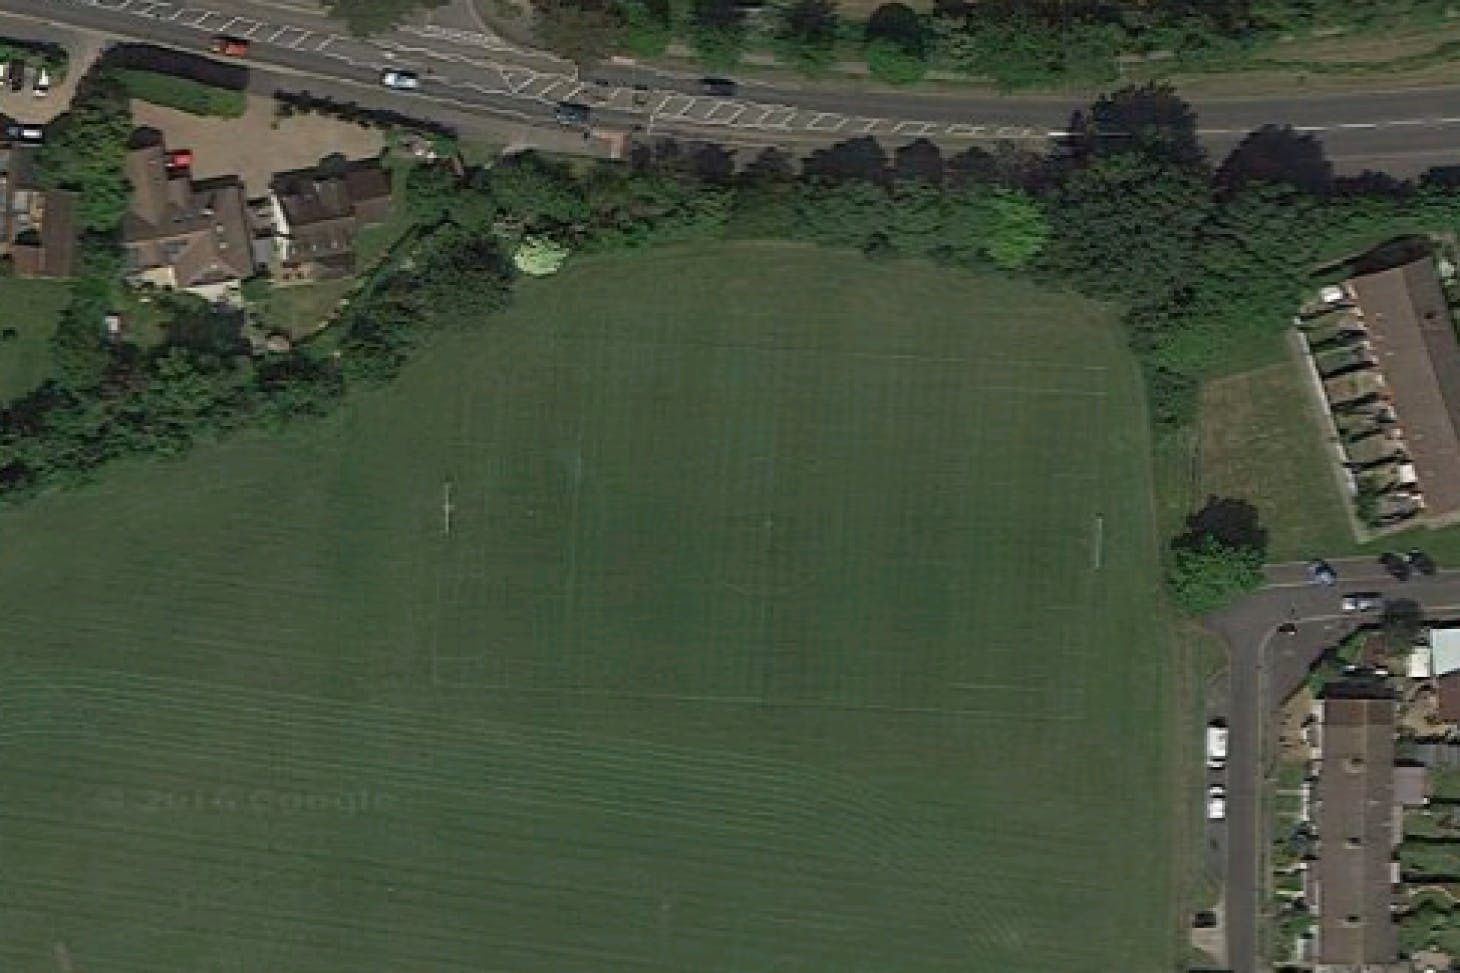 Altwood Church of England School 11 a side | Grass football pitch